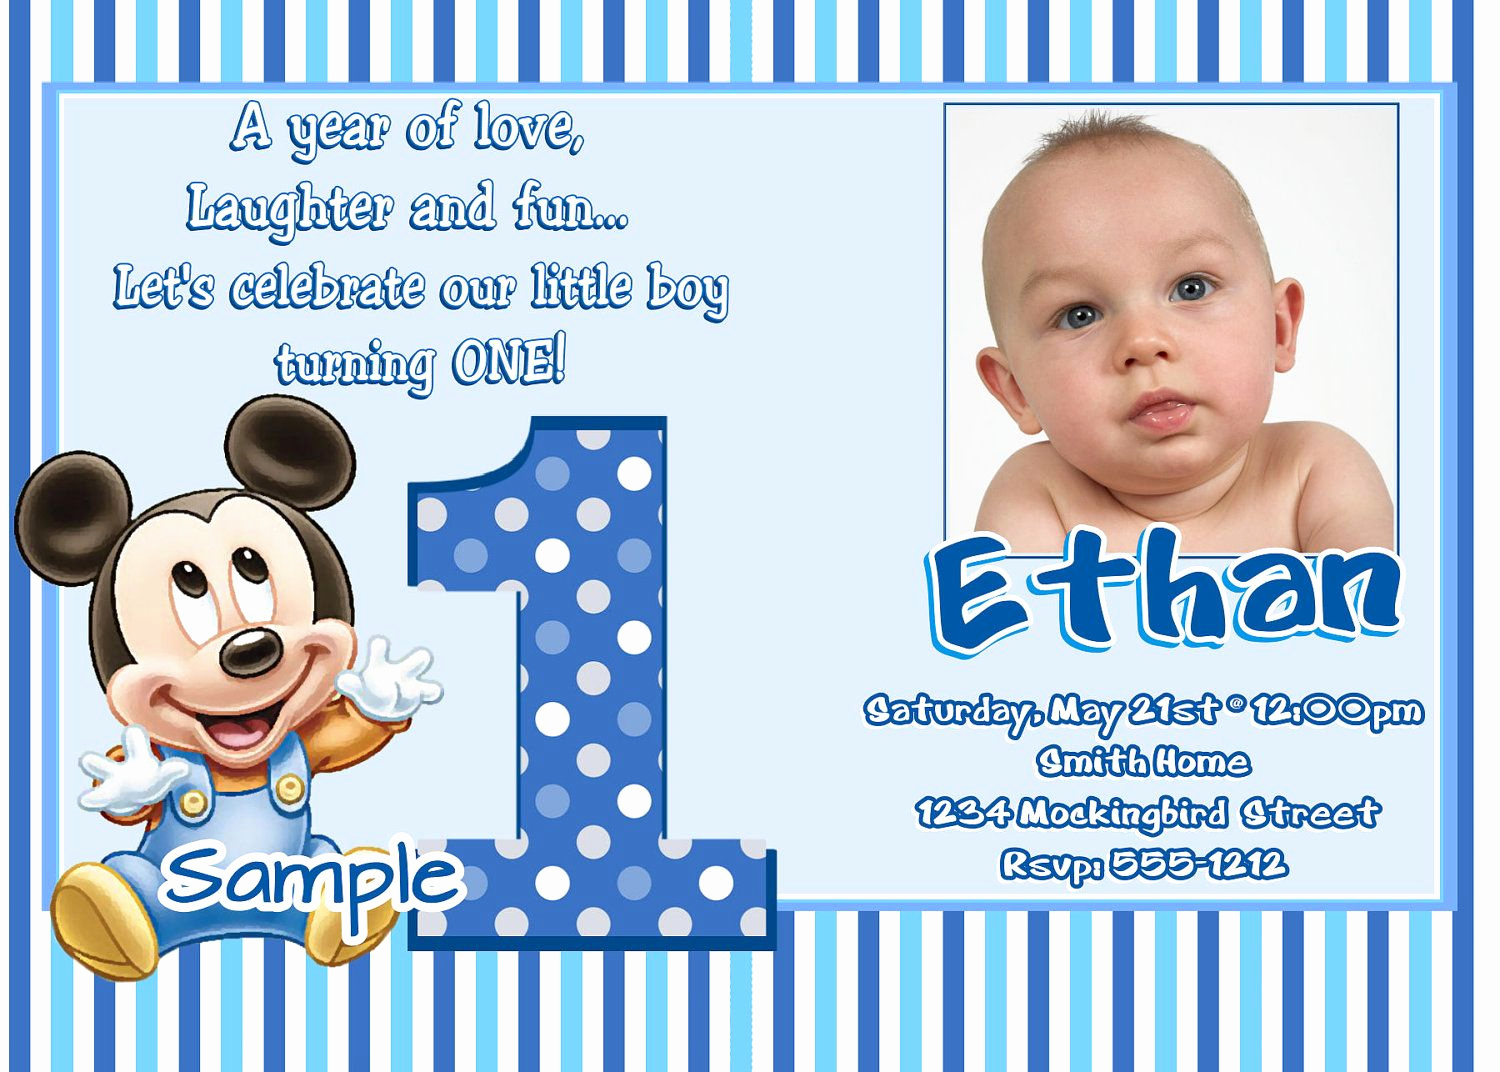 1st Birthday Invitation Template Elegant Free 1st Birthday Invitation Maker